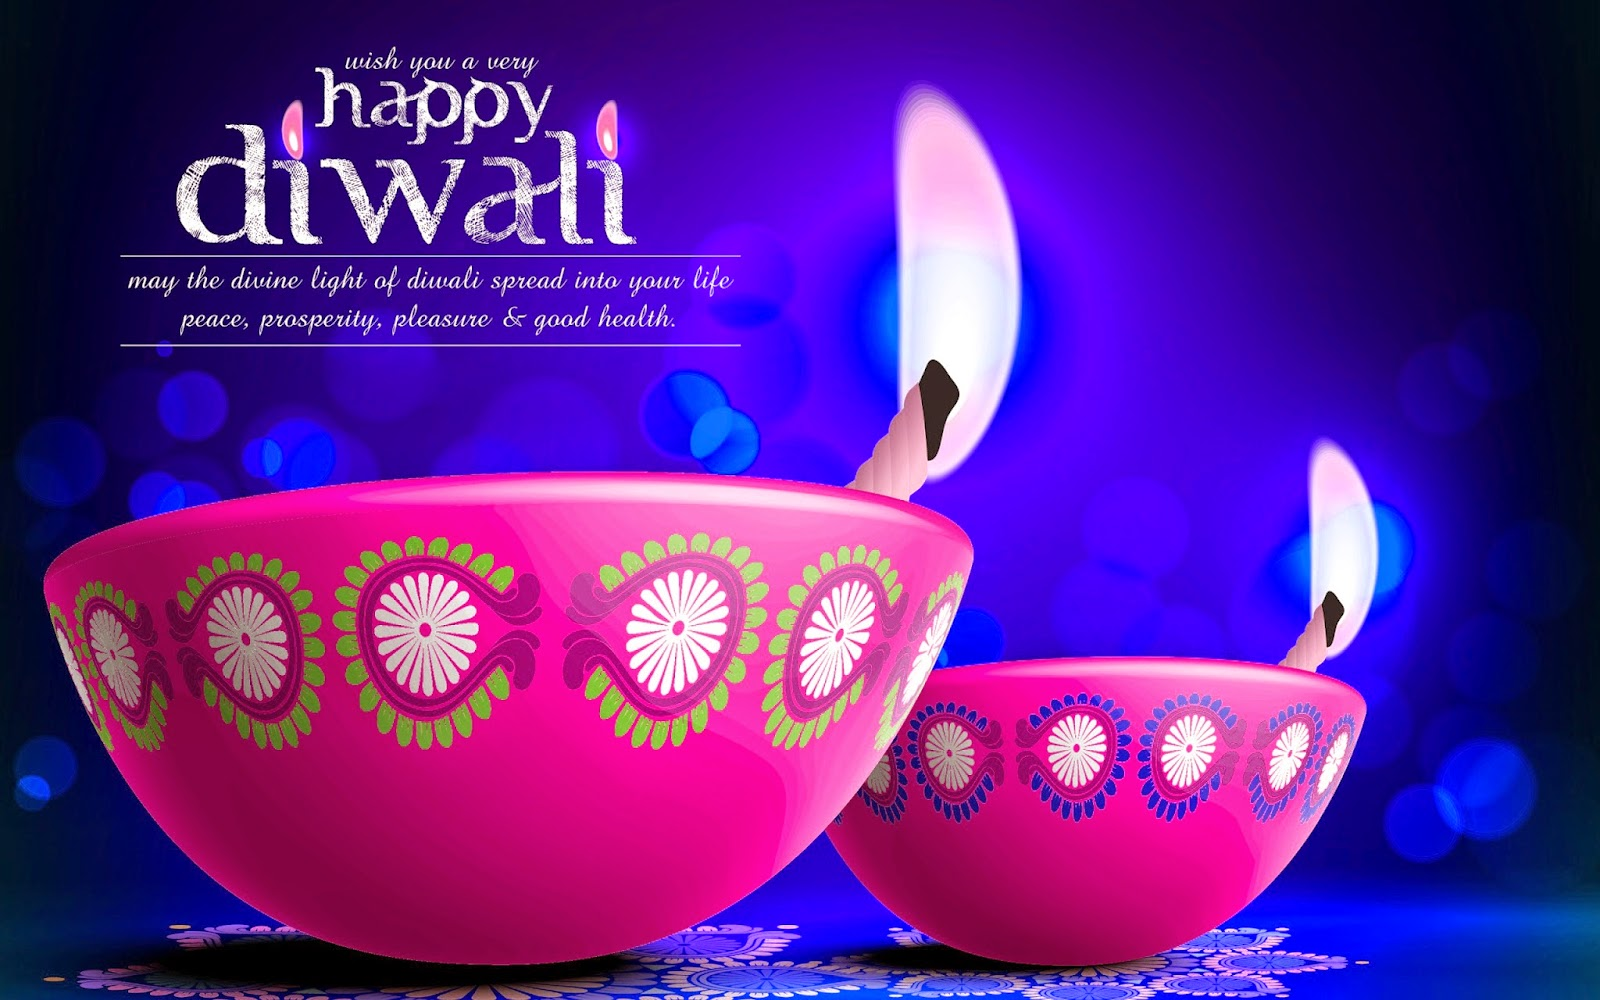 essay on diwali wallpapers Find diwali essay for class 1, 2, 3, 4, 5, 6, 7, 8, 9, 10, 11 and 12 find paragraph, long and short essay on diwali (deepawali) for your kids, children and students they celebrate it by sharing gifts, sweets, greetings and best wishes for diwali they enjoy a lot of activities, playing games, firing crackers, puja and many.